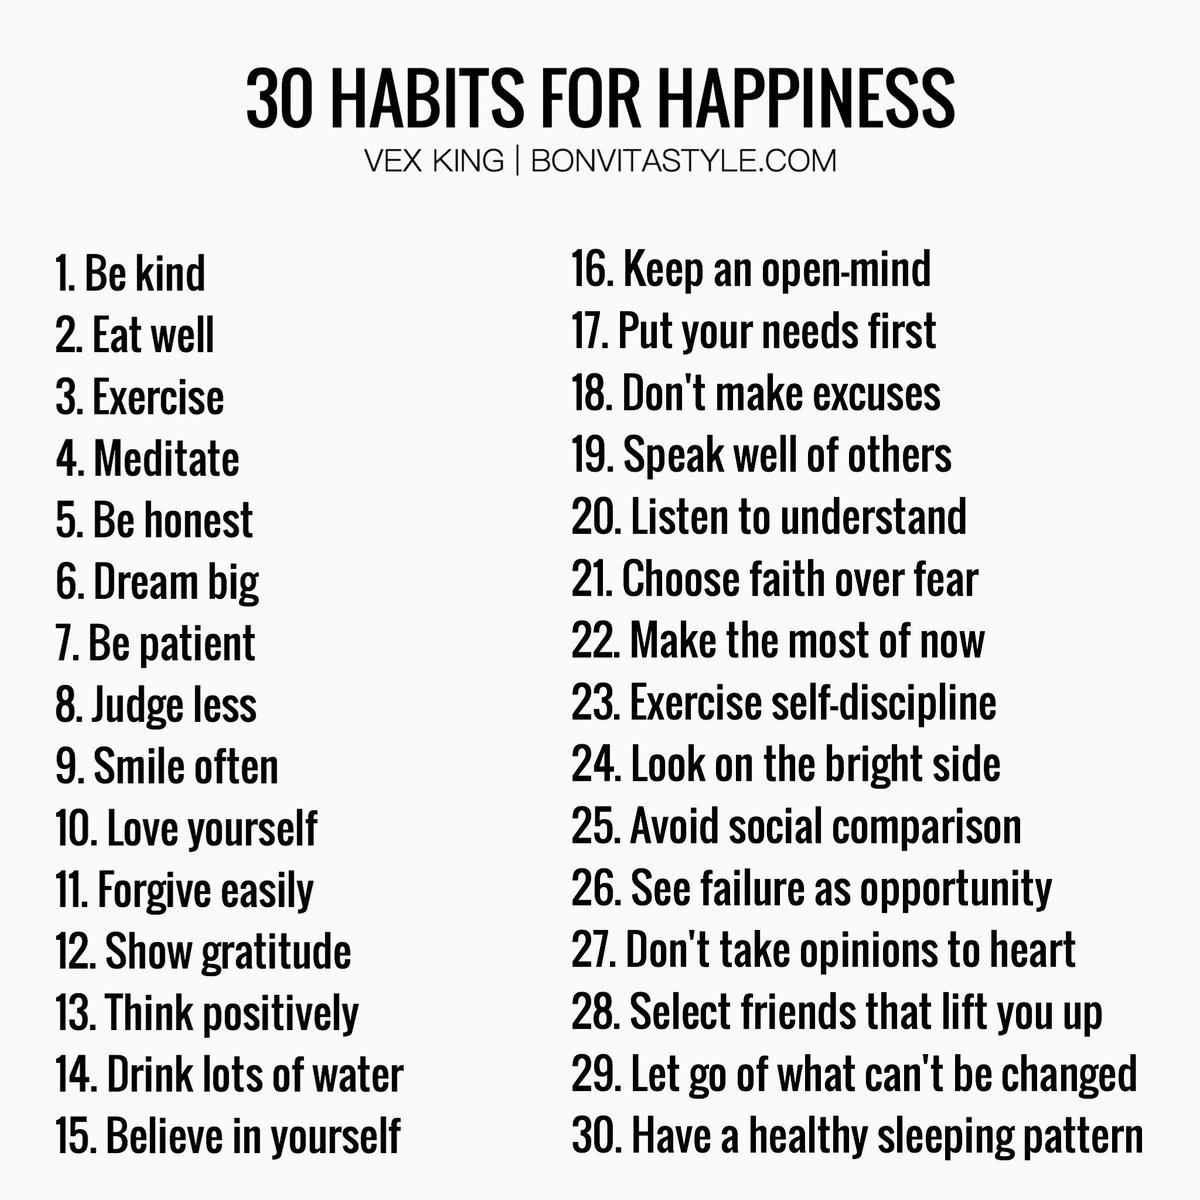 30 Habits For Happiness by @VexKing #InternationalDayOfHappiness